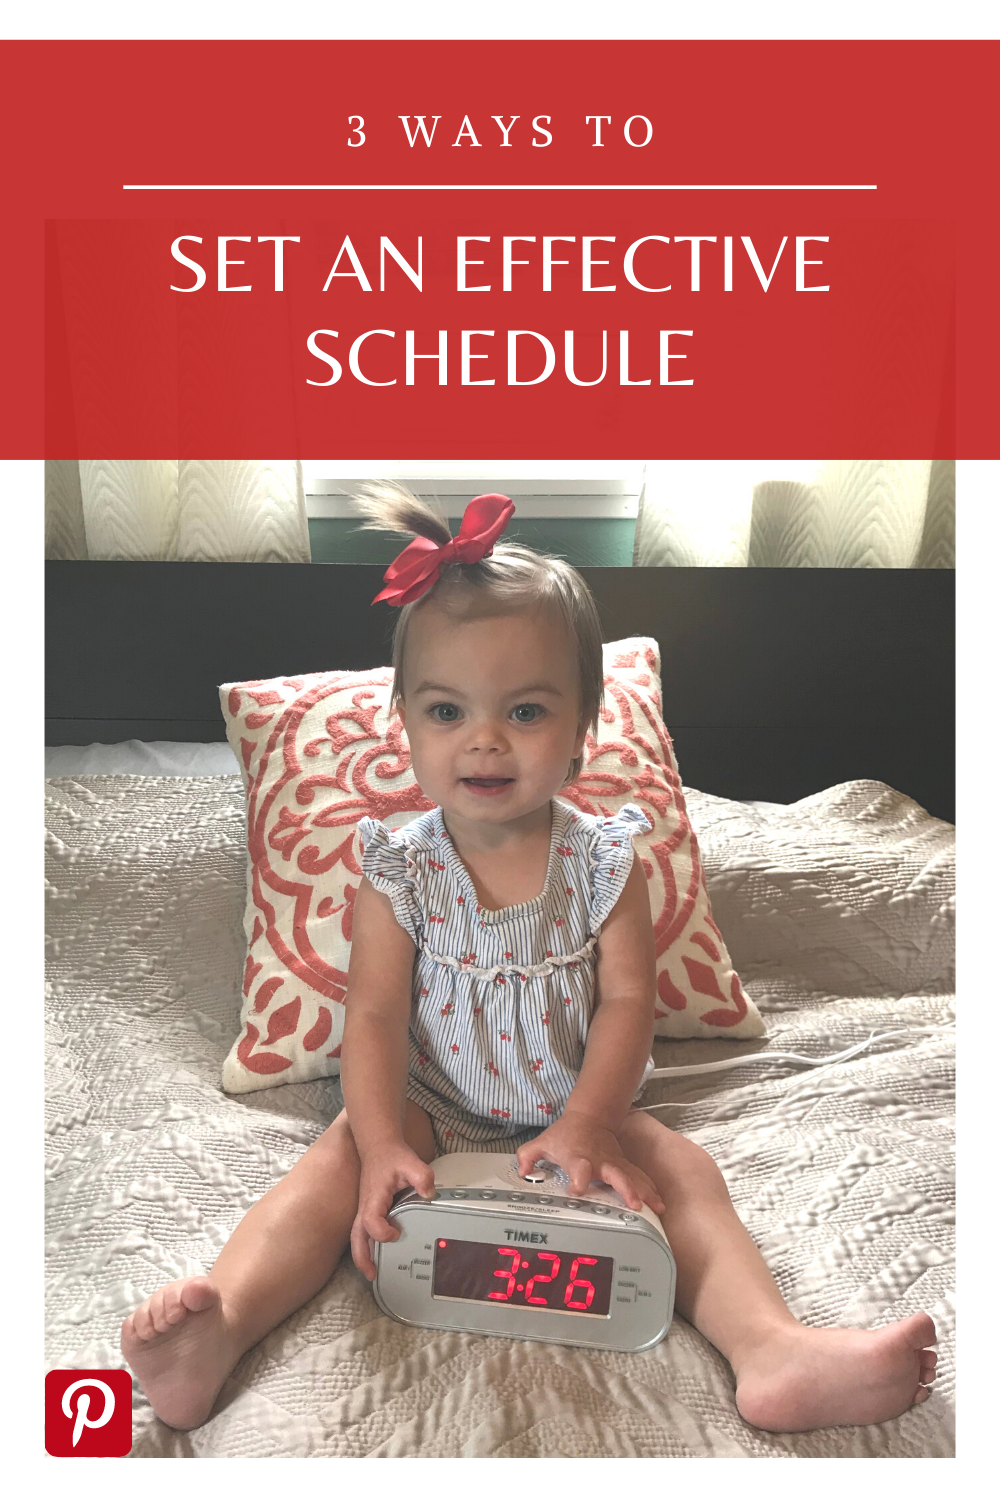 Little Bell Sleep Solutions, setting effective schedules, baby sleep schedule, sleep schedule for kids, Pittsburgh sleep coach